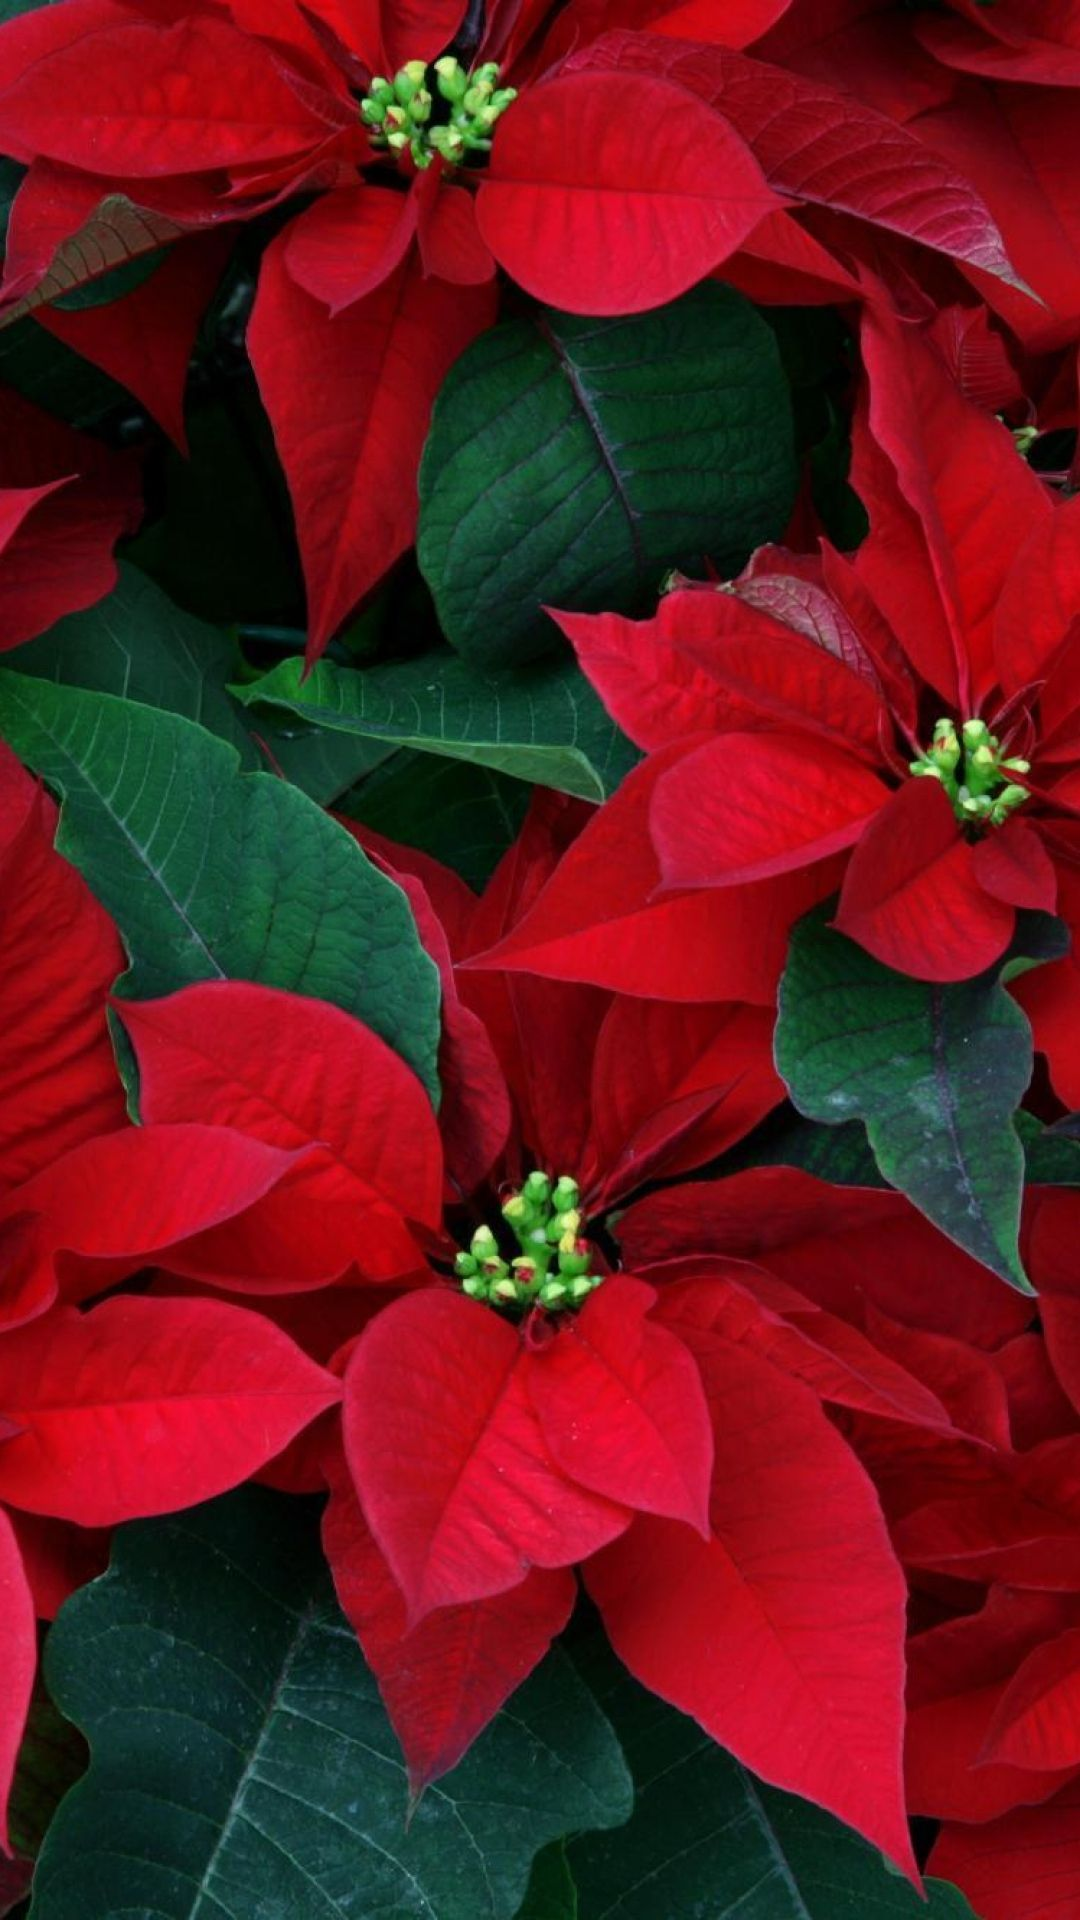 1080x1920 Poinsettia Flowers Herbs Leaves Red Close Up Wallpaper ...